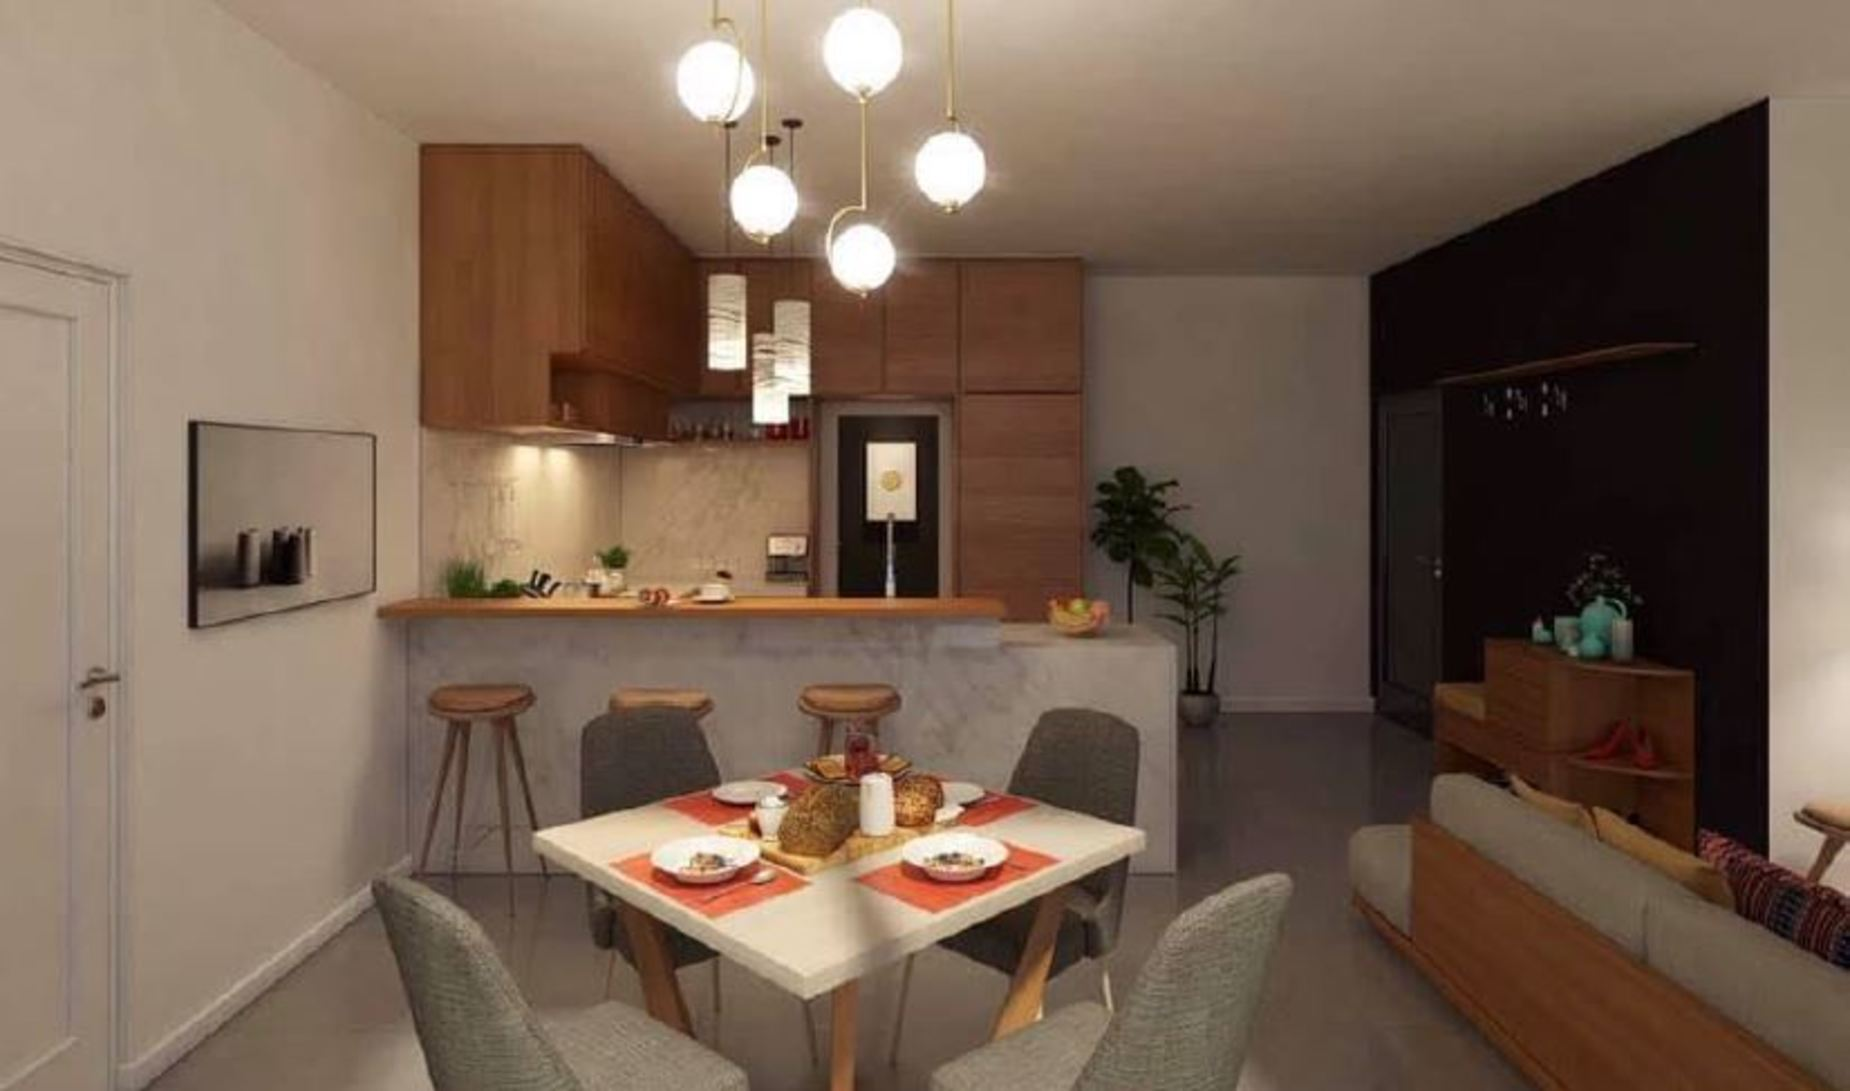 3 bed Apartment For Sale in Dingli, Dingli - thumb 4